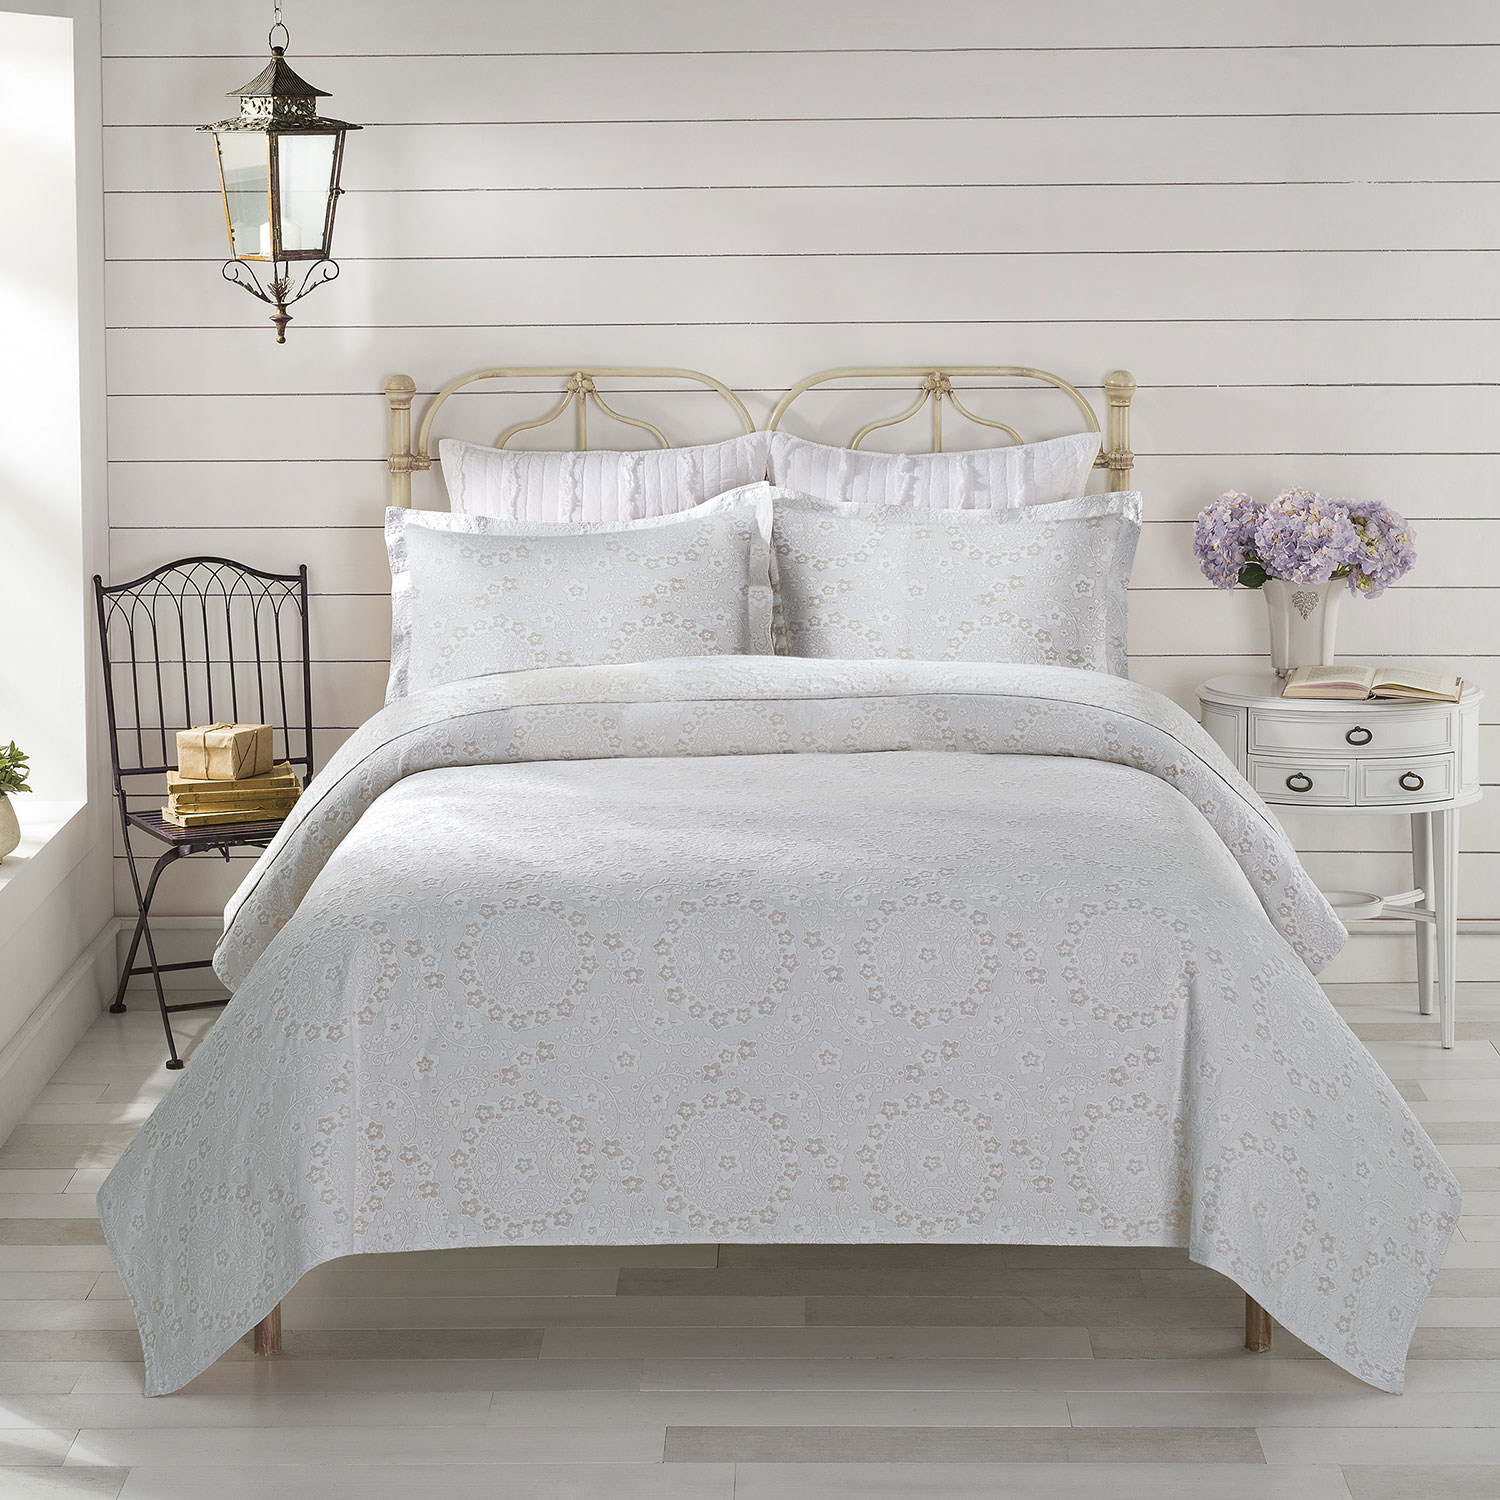 Meadow Taupe by Lamont Home  BeddingSuperStorecom